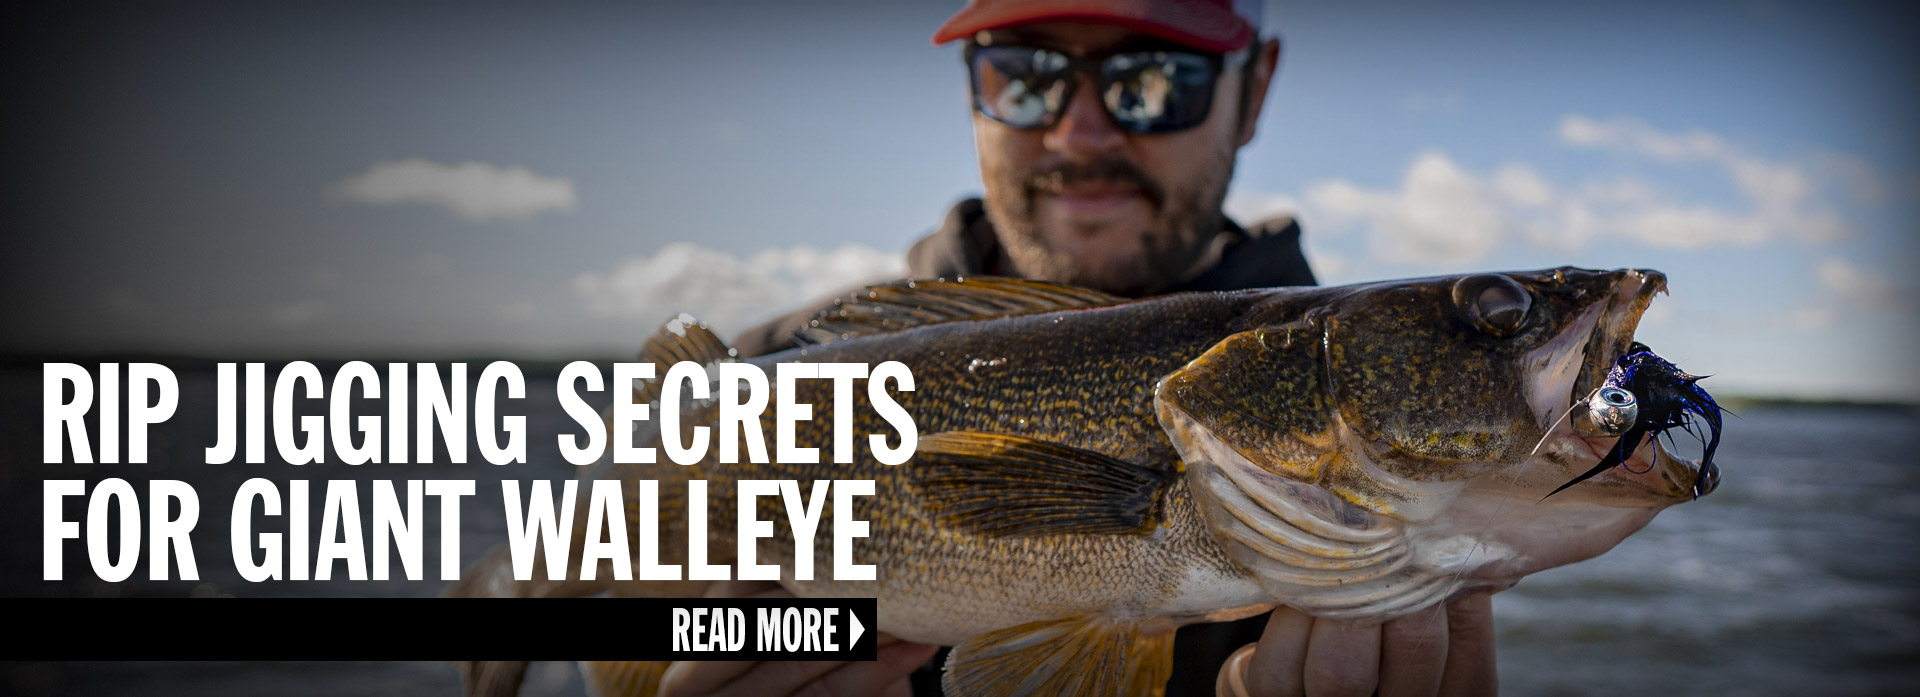 Rip Jigging Secrets For Giant Walleye